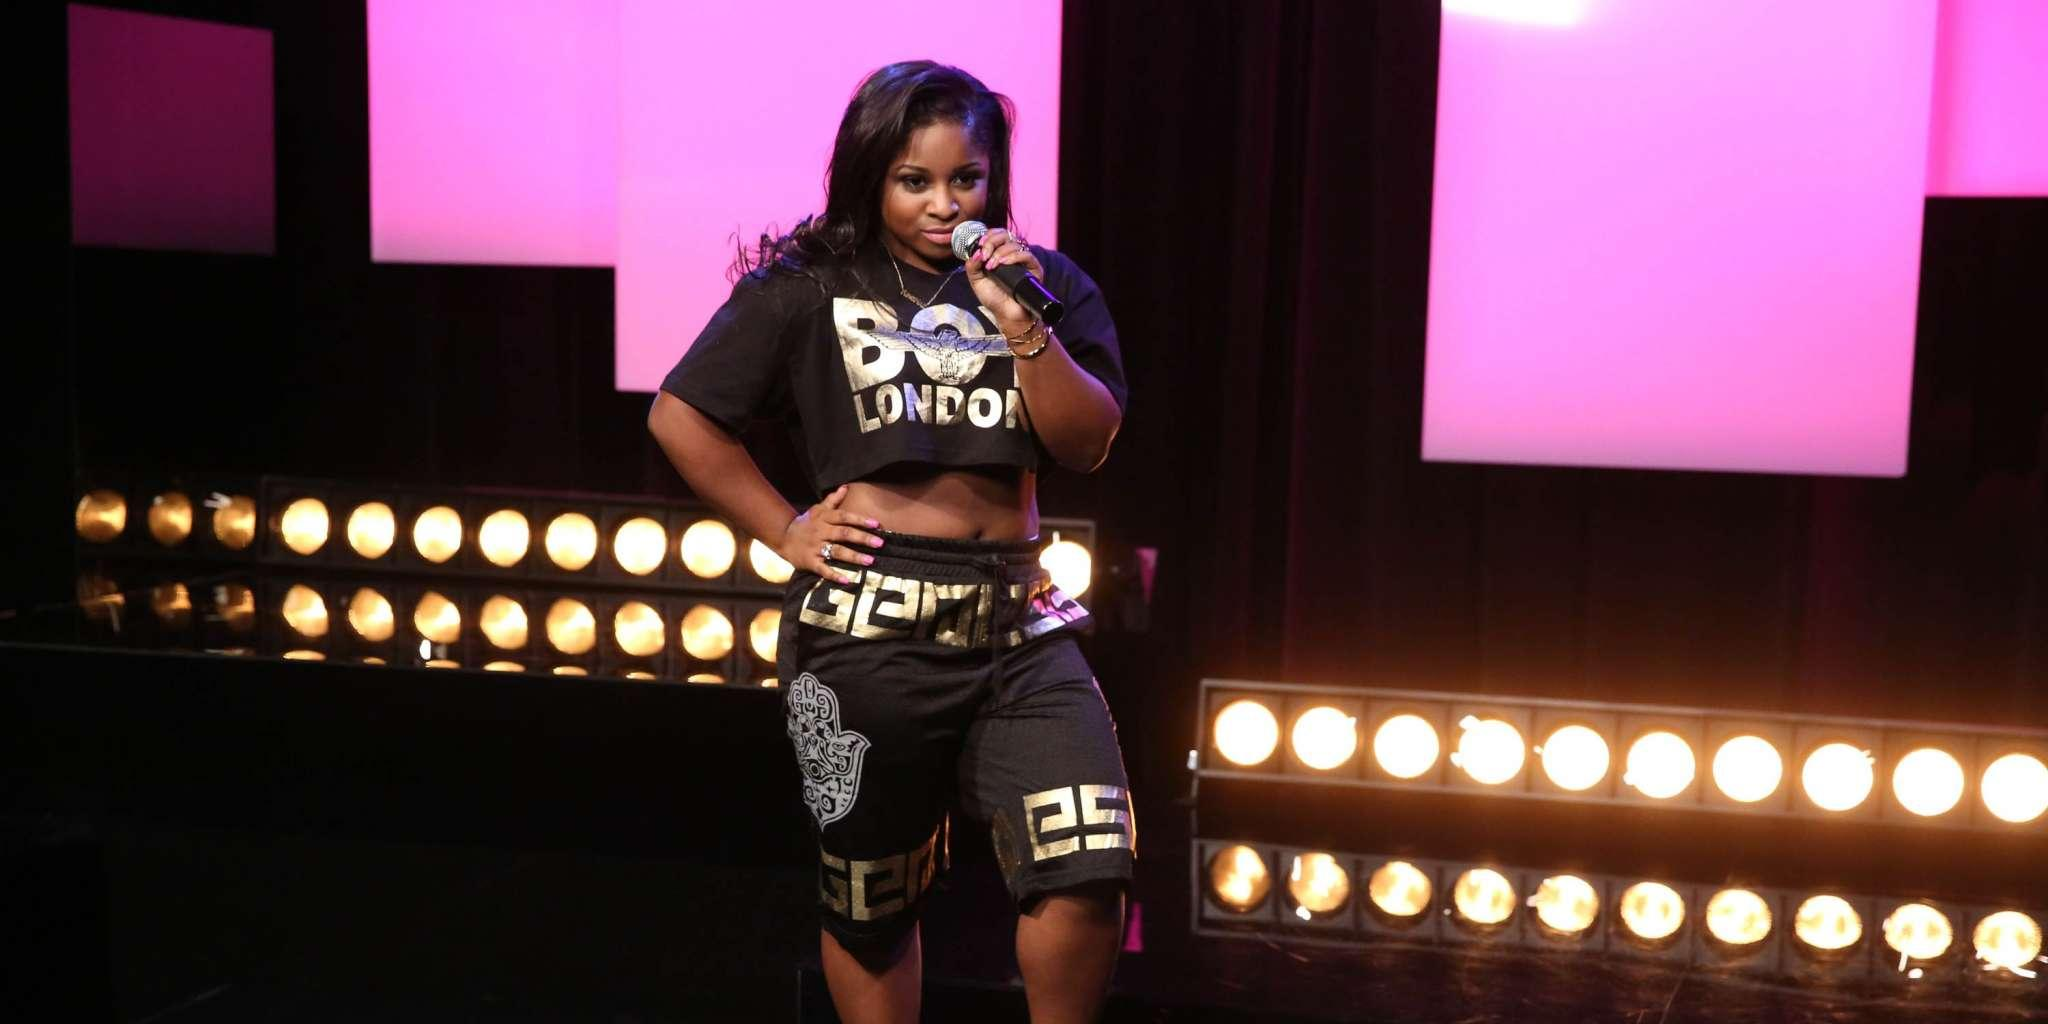 Reginae Carter Shows Off Massive Cleavage And Fans Are Here For It - They Adore Her Natural Look